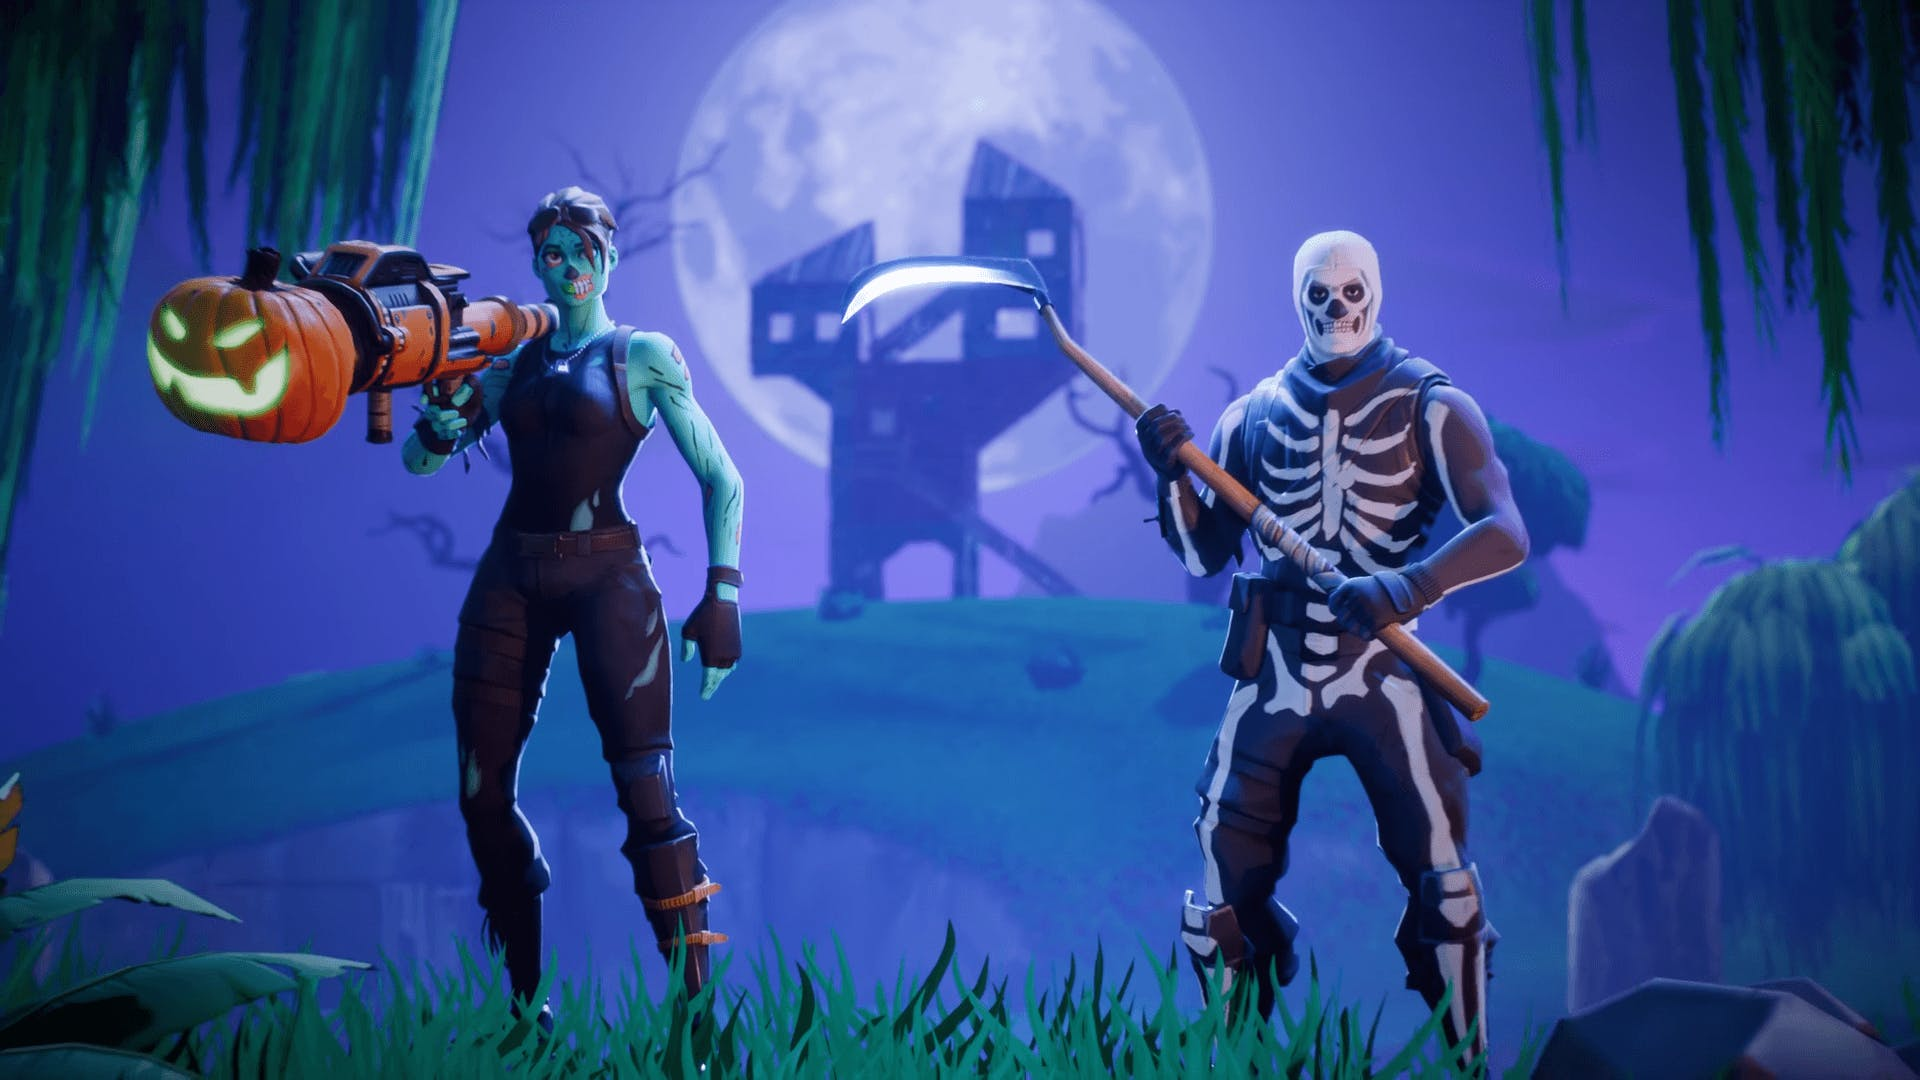 Fortnite Skull Trooper Costume Returns With Perks For Original